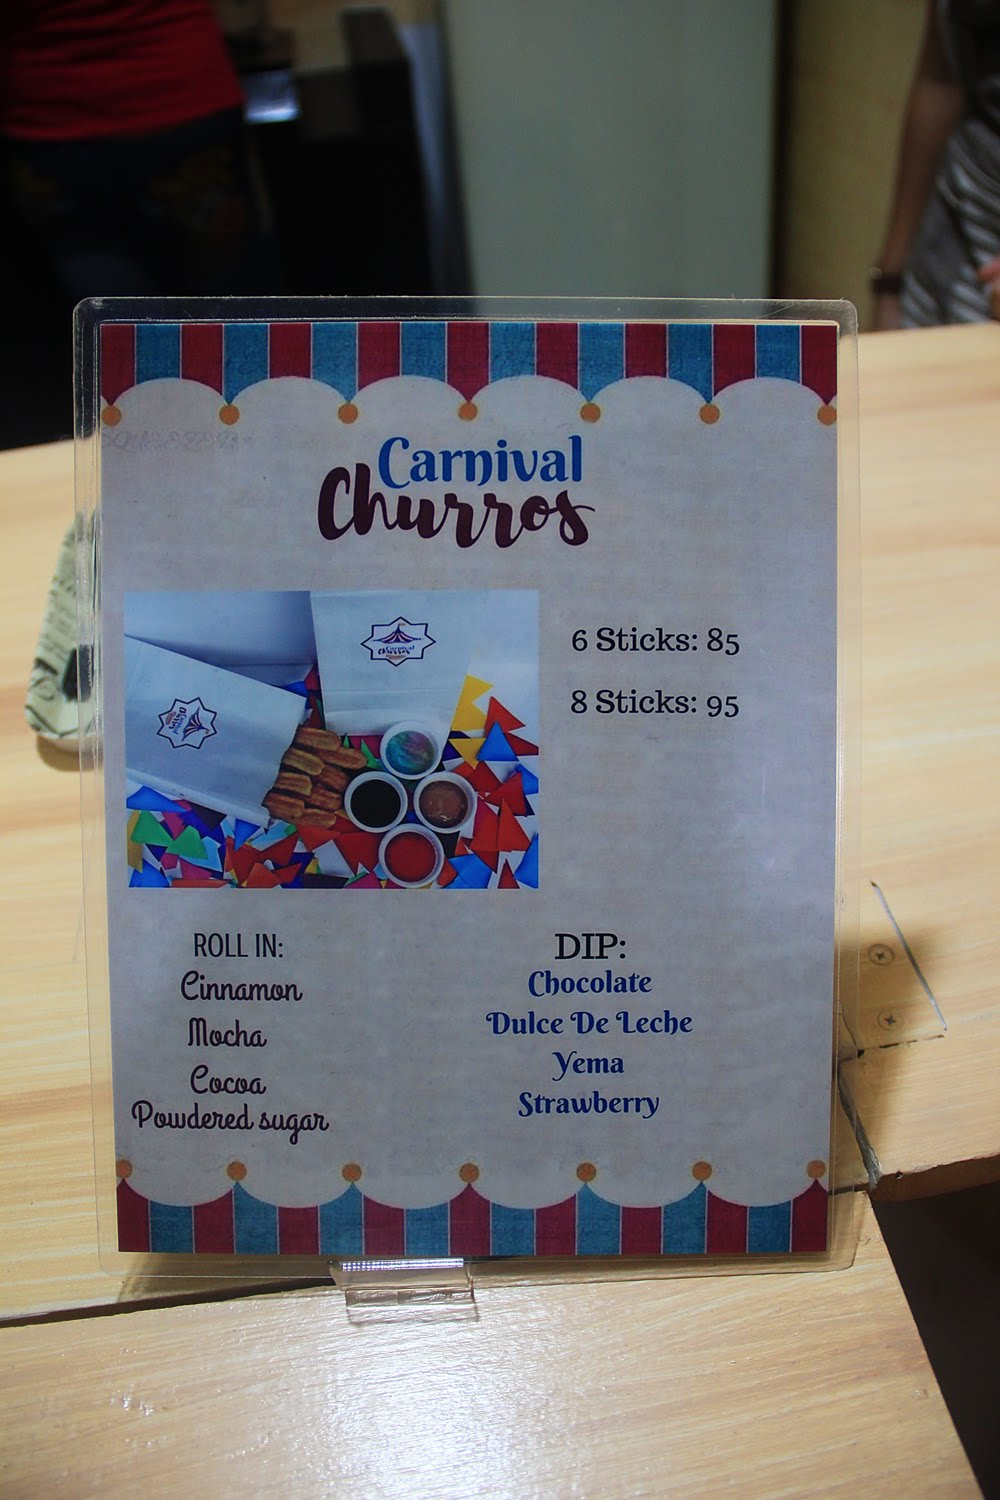 Carnival Churros Menu